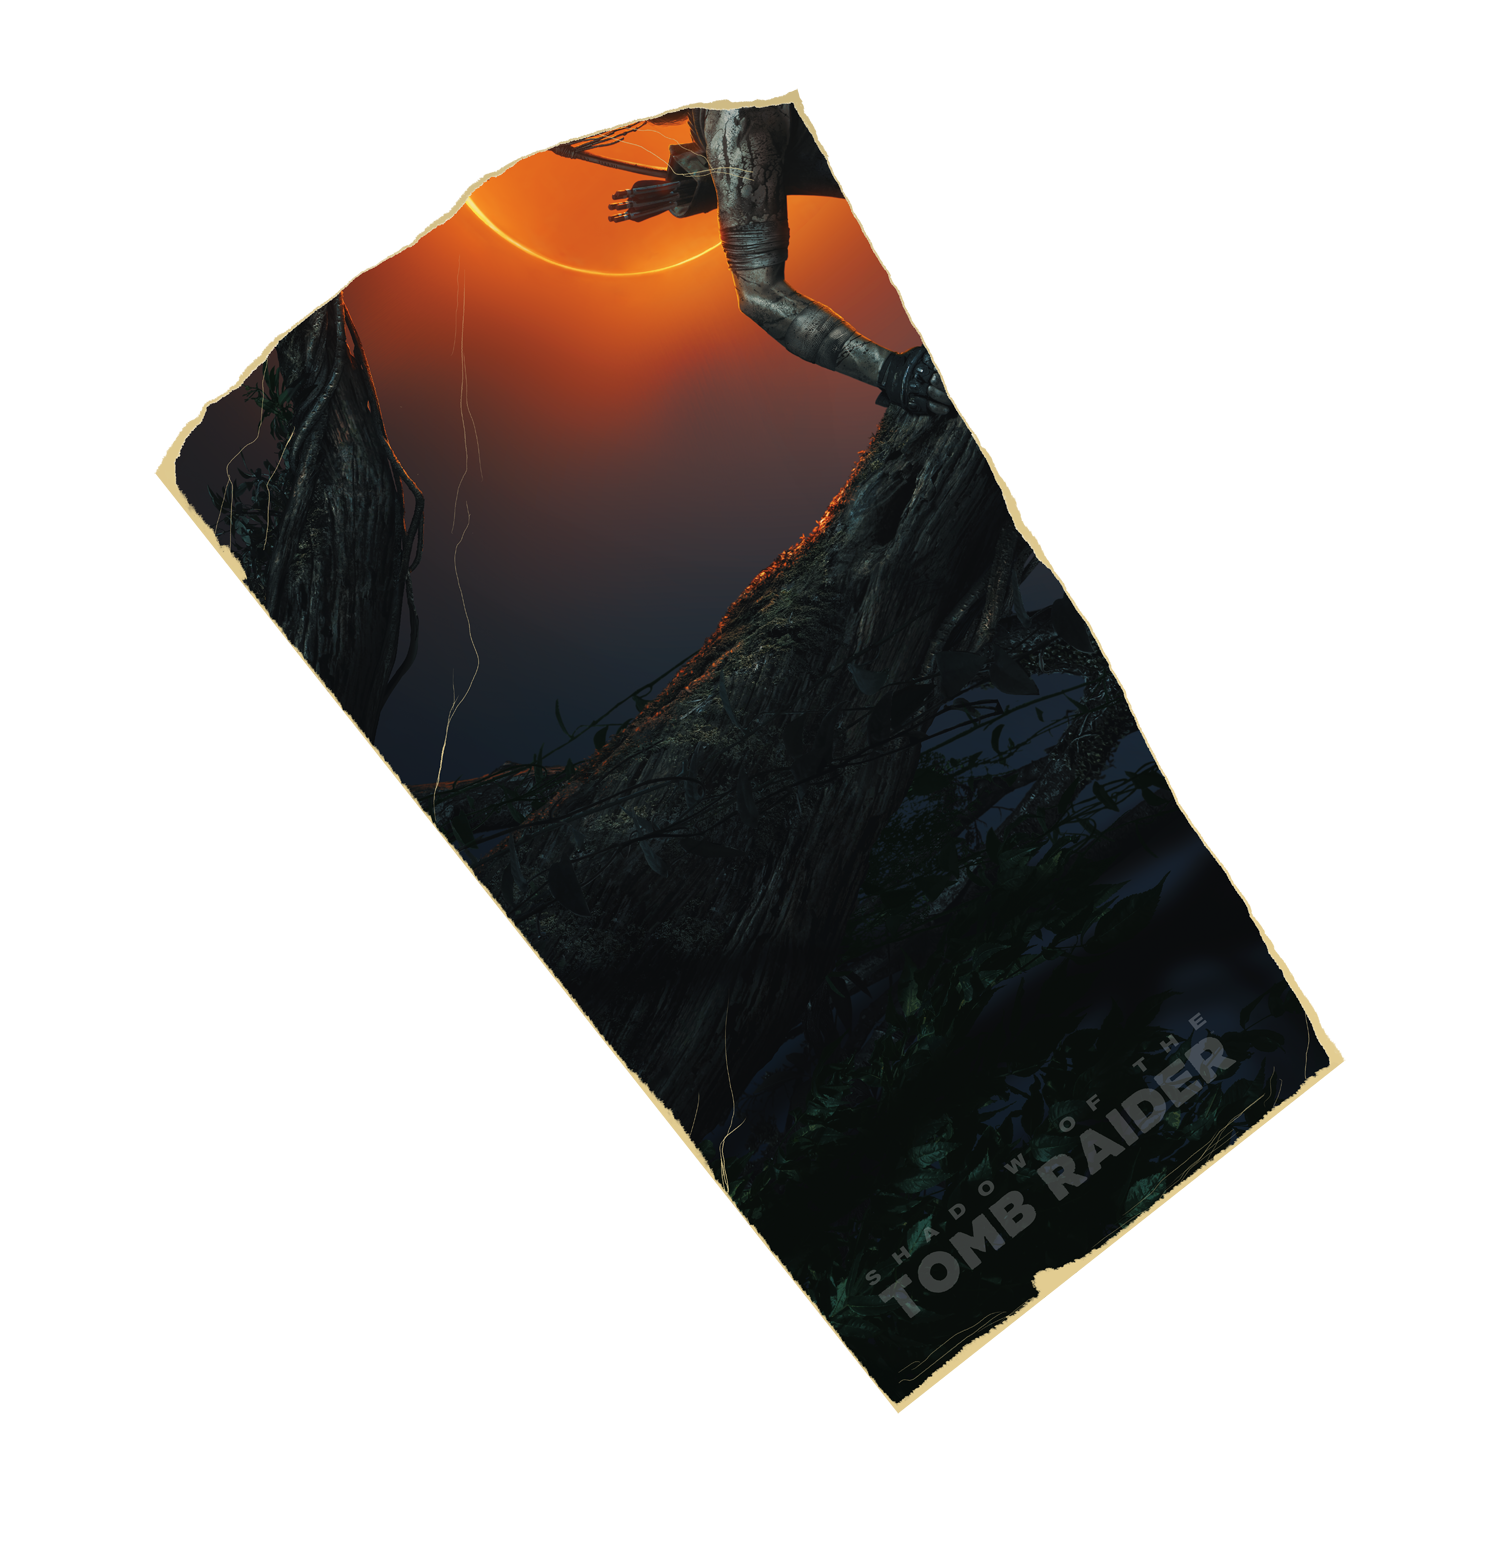 ShadowOfTombRaider_PuzzlePieces_2